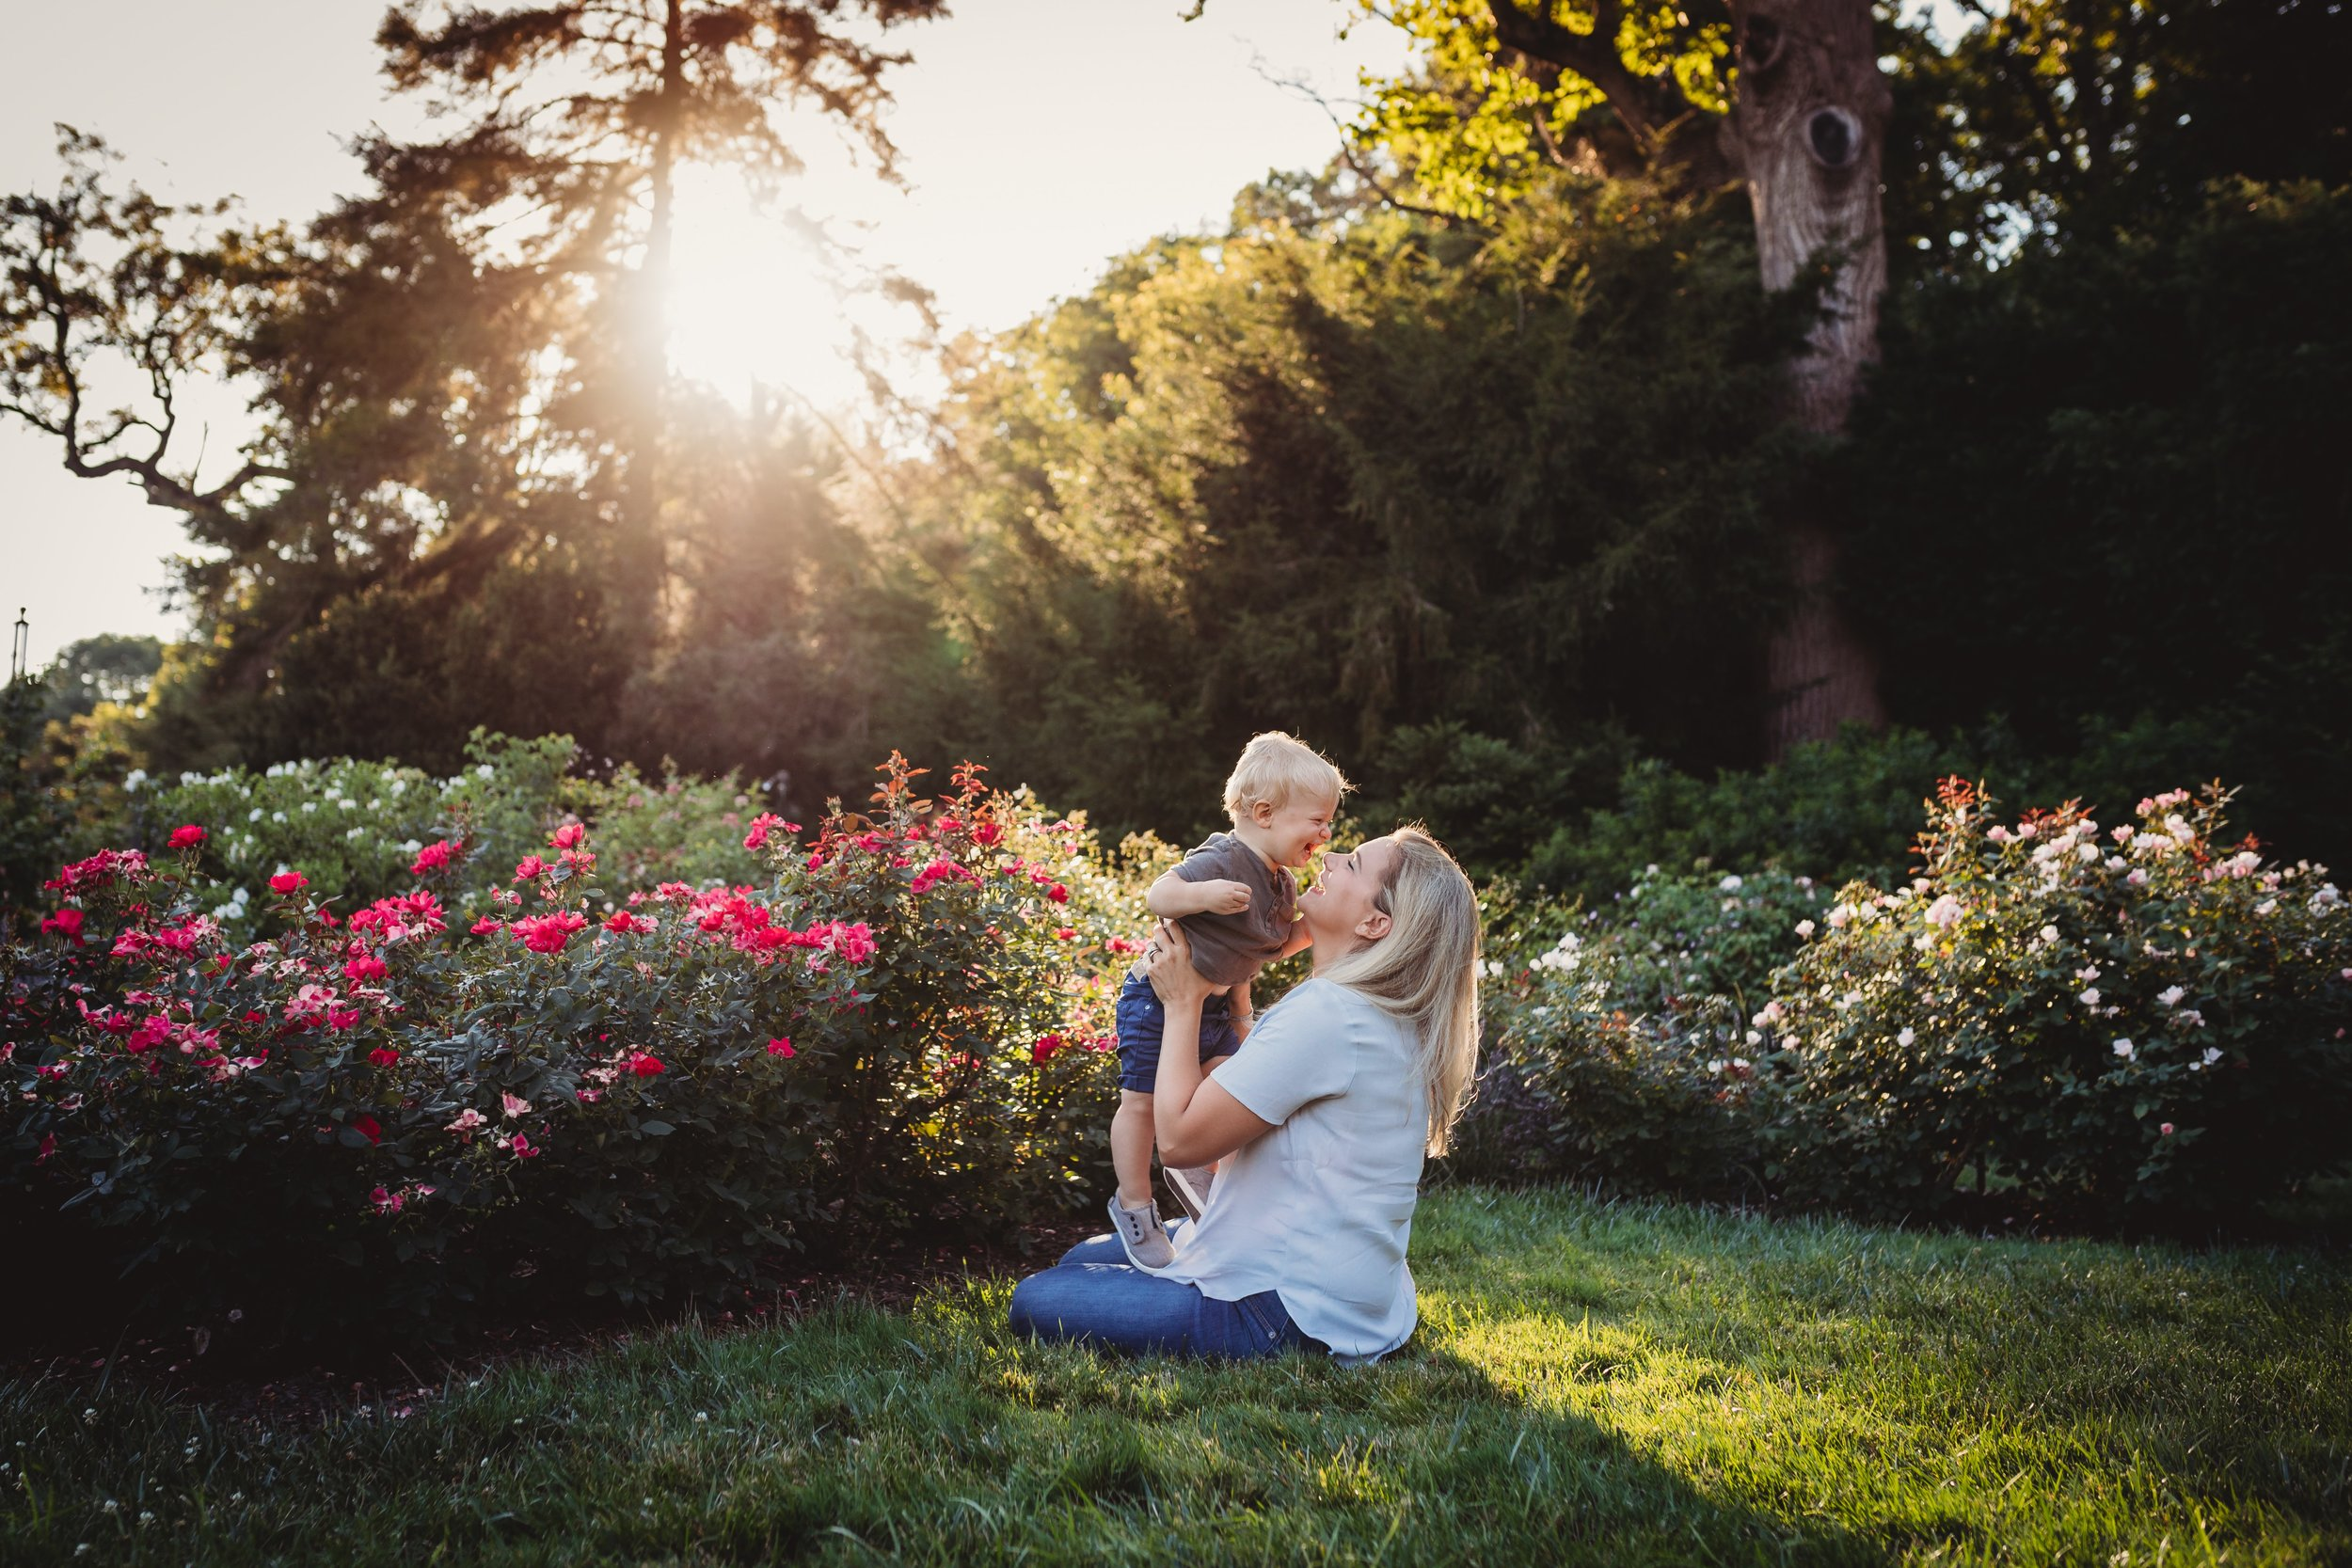 Ambler Family Photography Session at Morris Arboretum with Desiree Hoelzle Photography